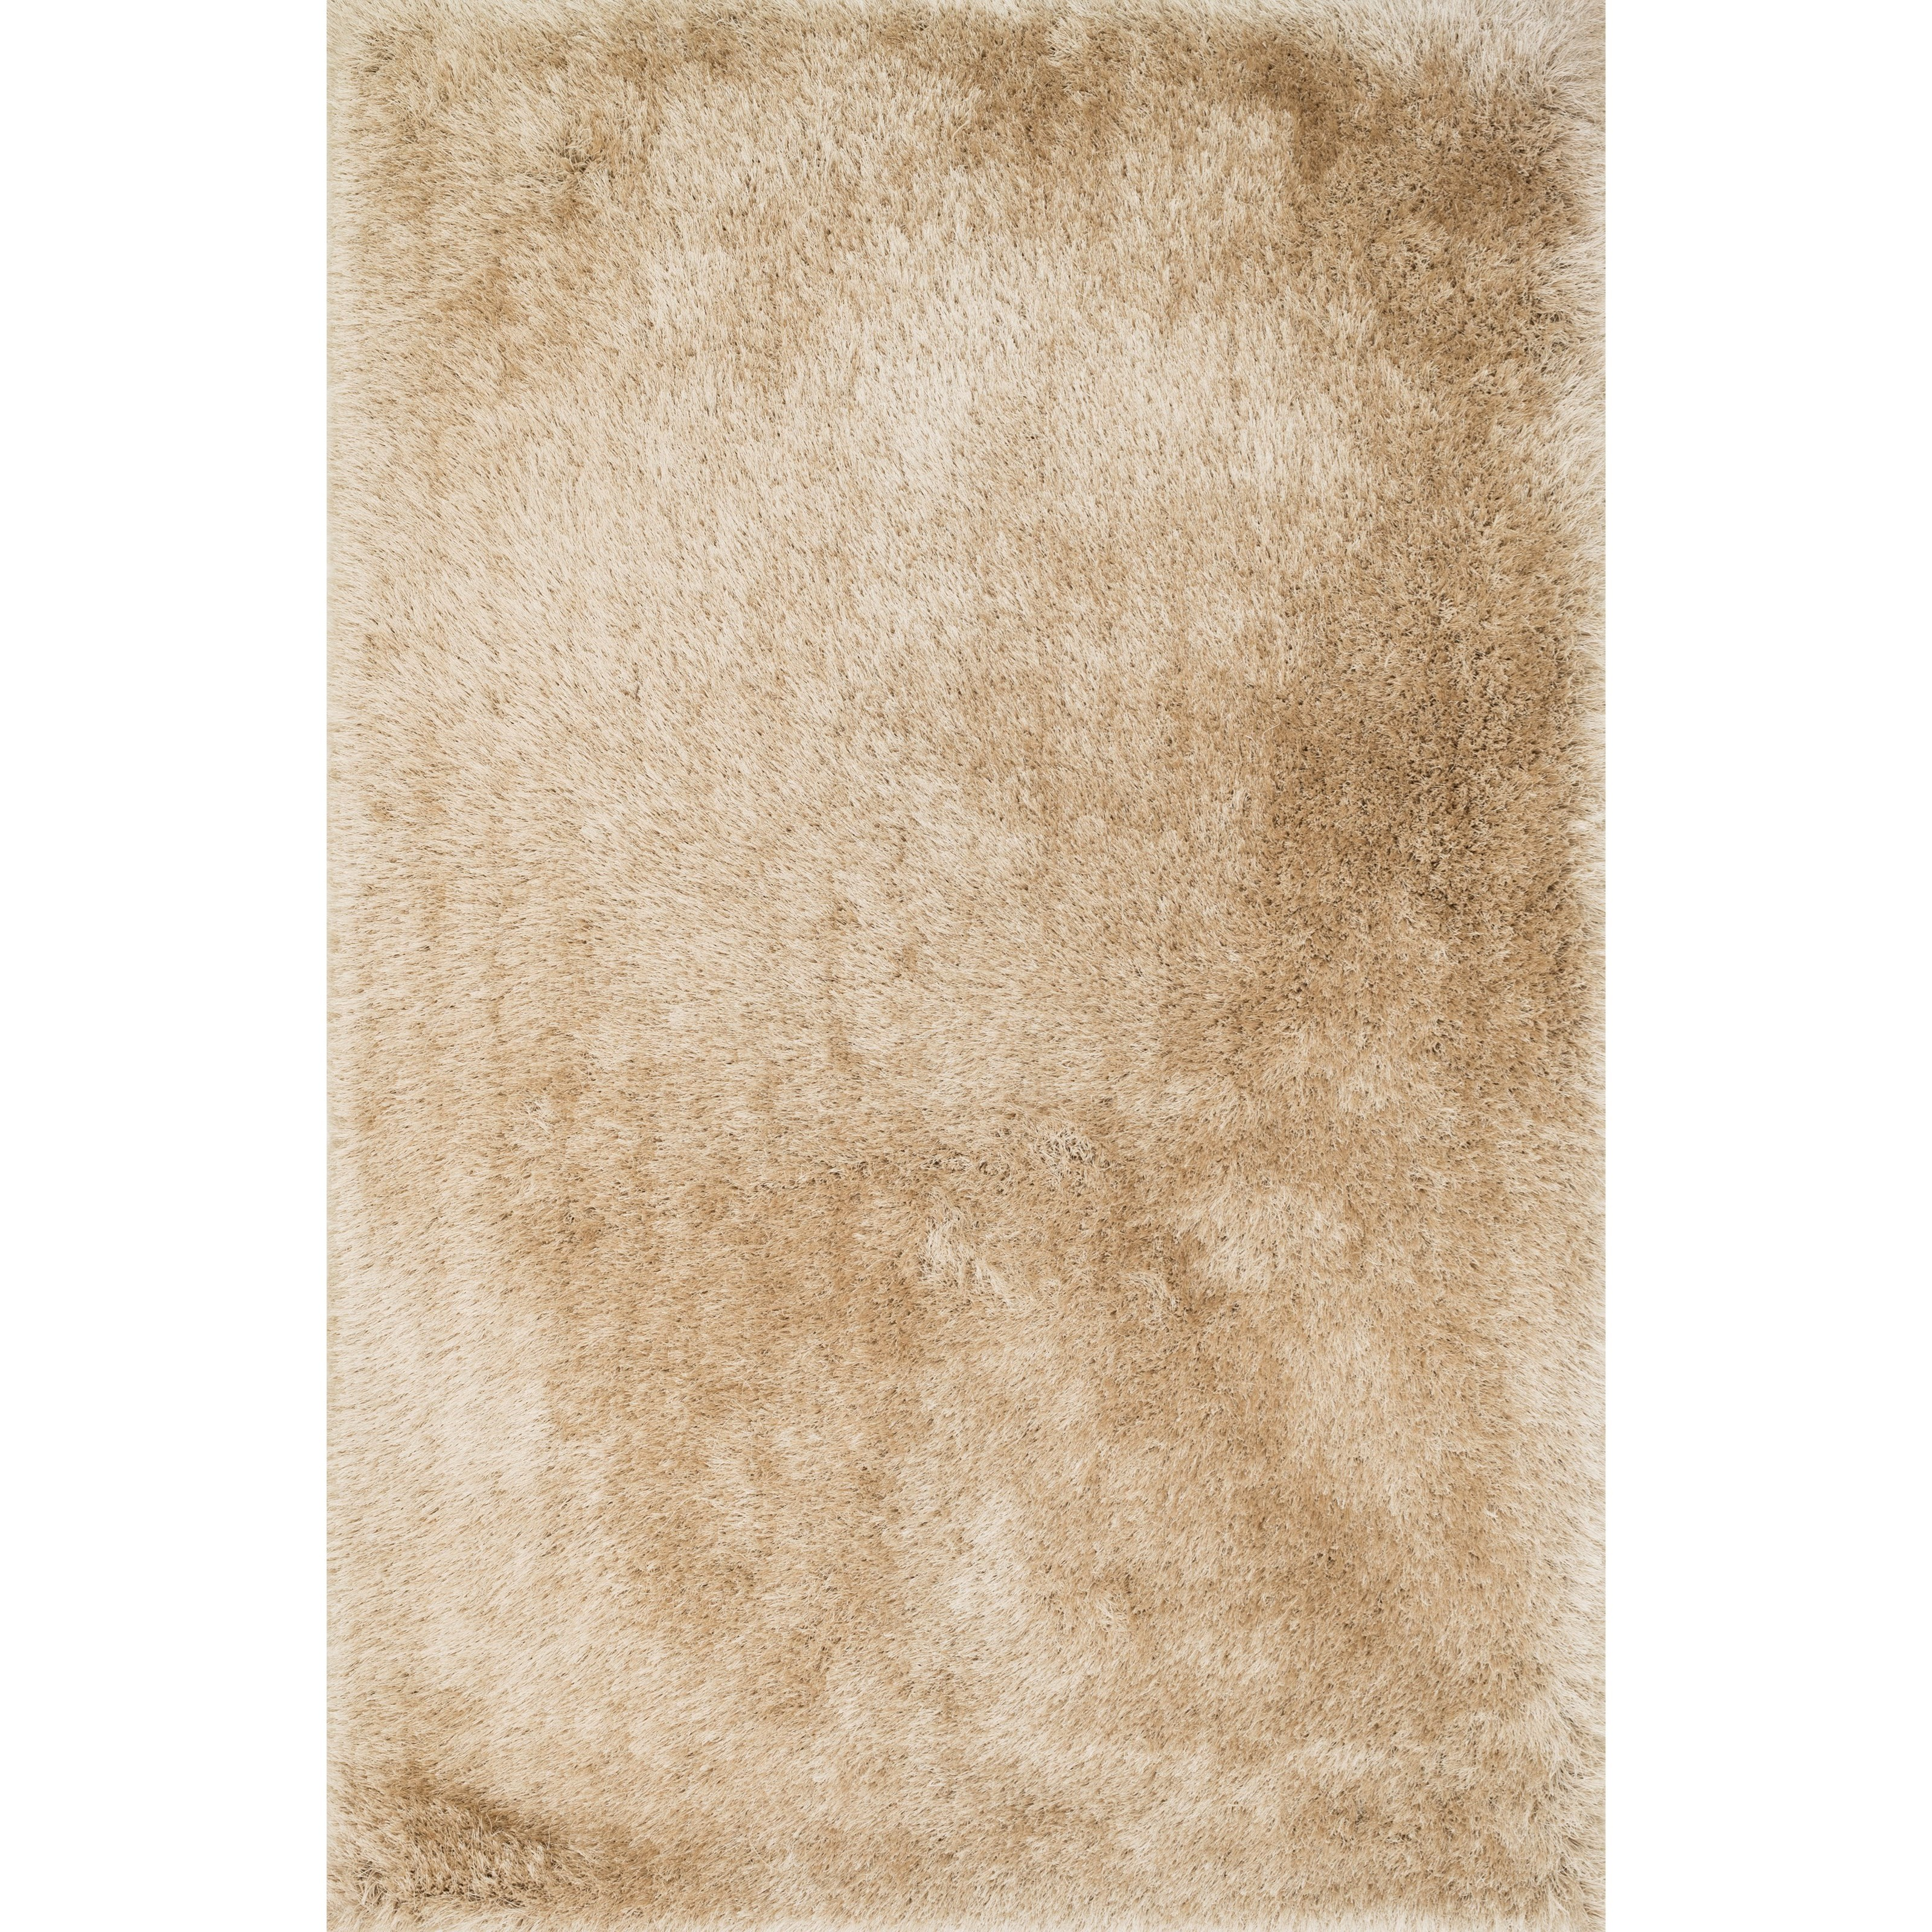 """Allure Shag 8'0"""" x 8'0"""" Round Beige Rug by Loloi Rugs at Virginia Furniture Market"""